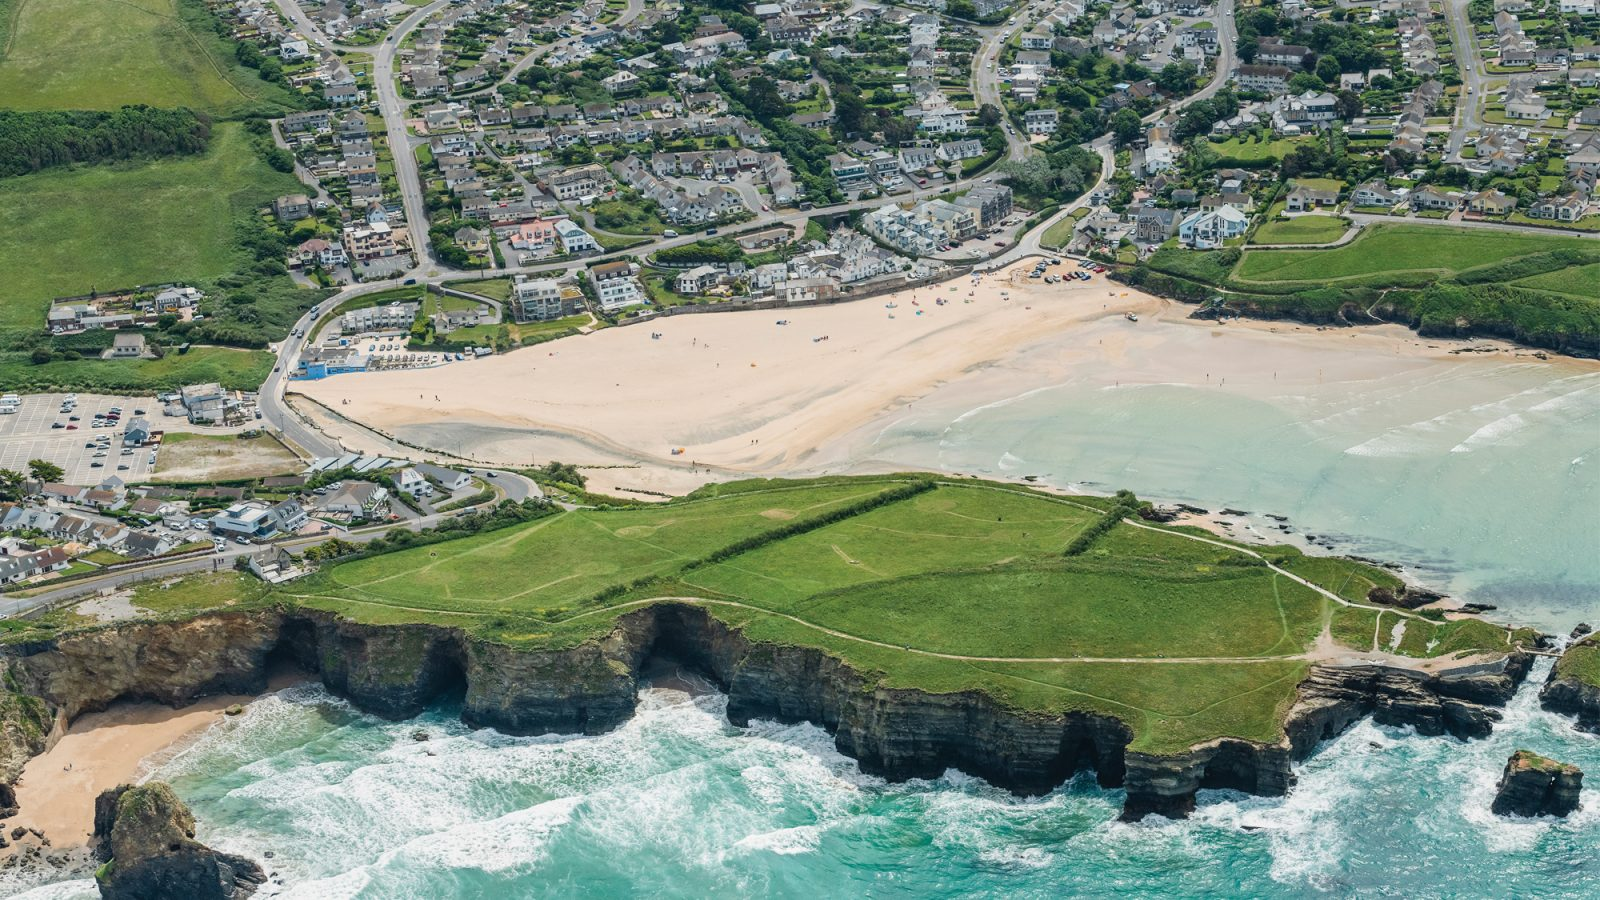 Drone photo of Porth in Newquay, Cornwall